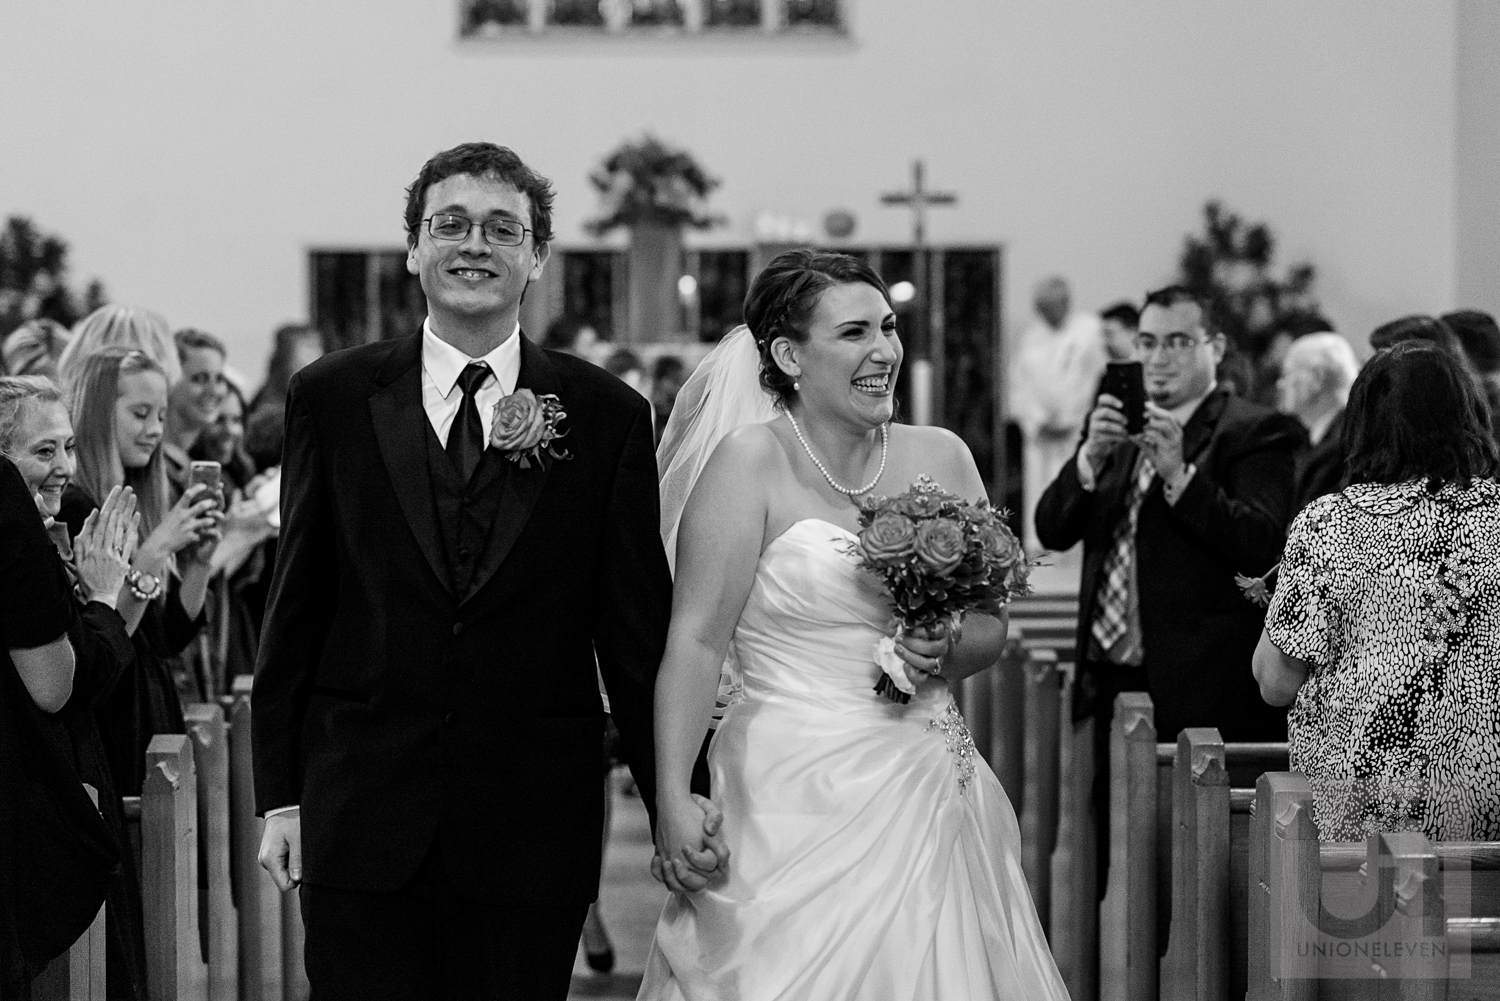 The bride and groom walking down the aisle as husband and wife